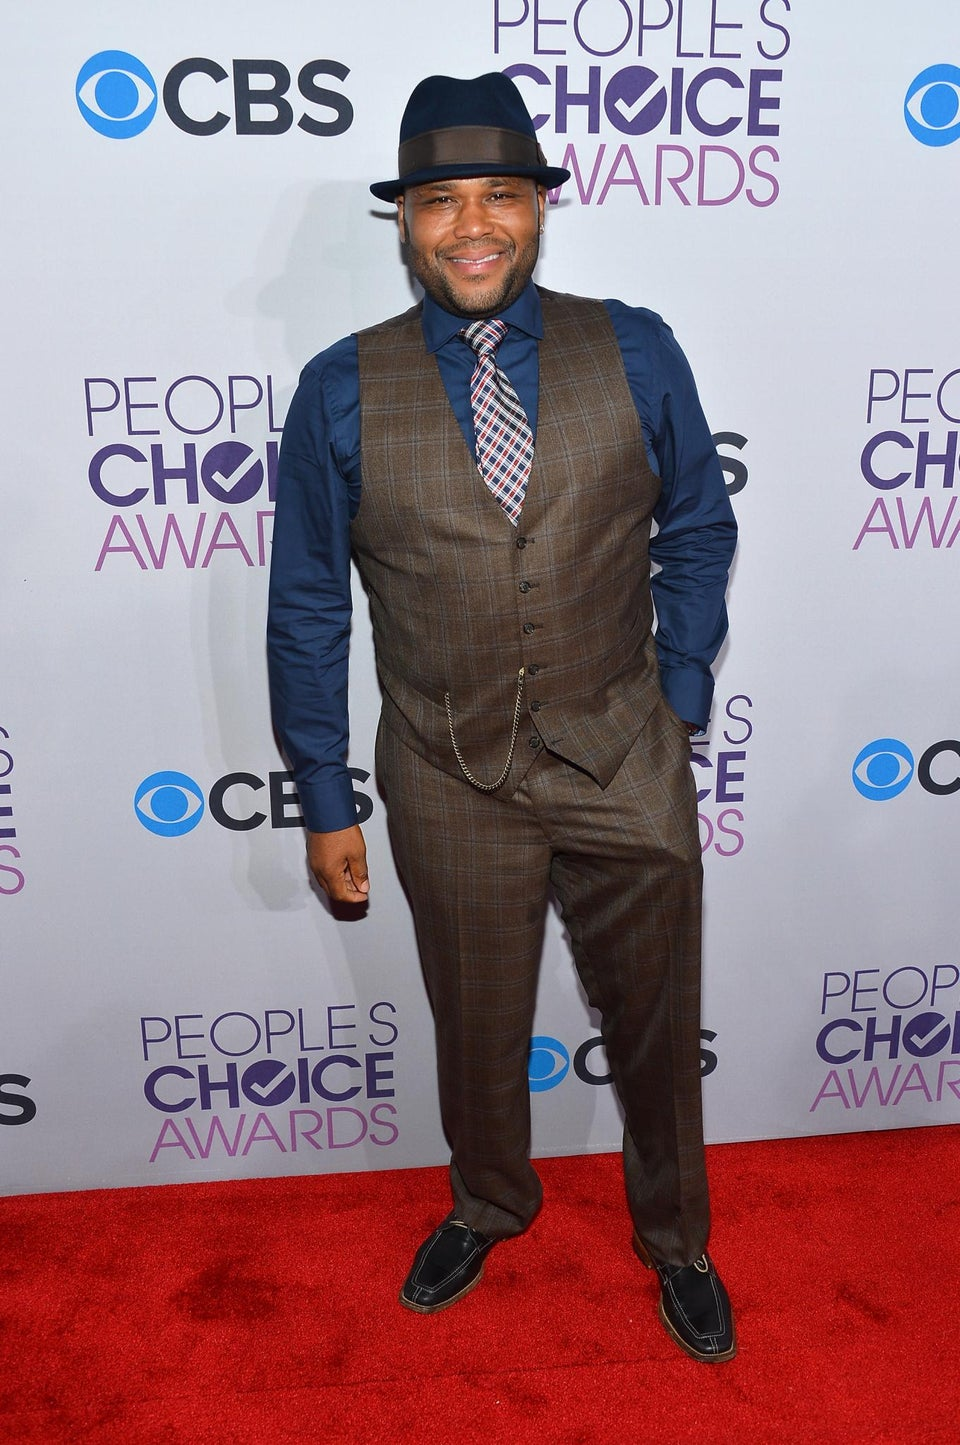 Anthony Anderson to Host NAACP Awards, Tyler Perry, Lupita Nyong'o, Michael Ealy to Present